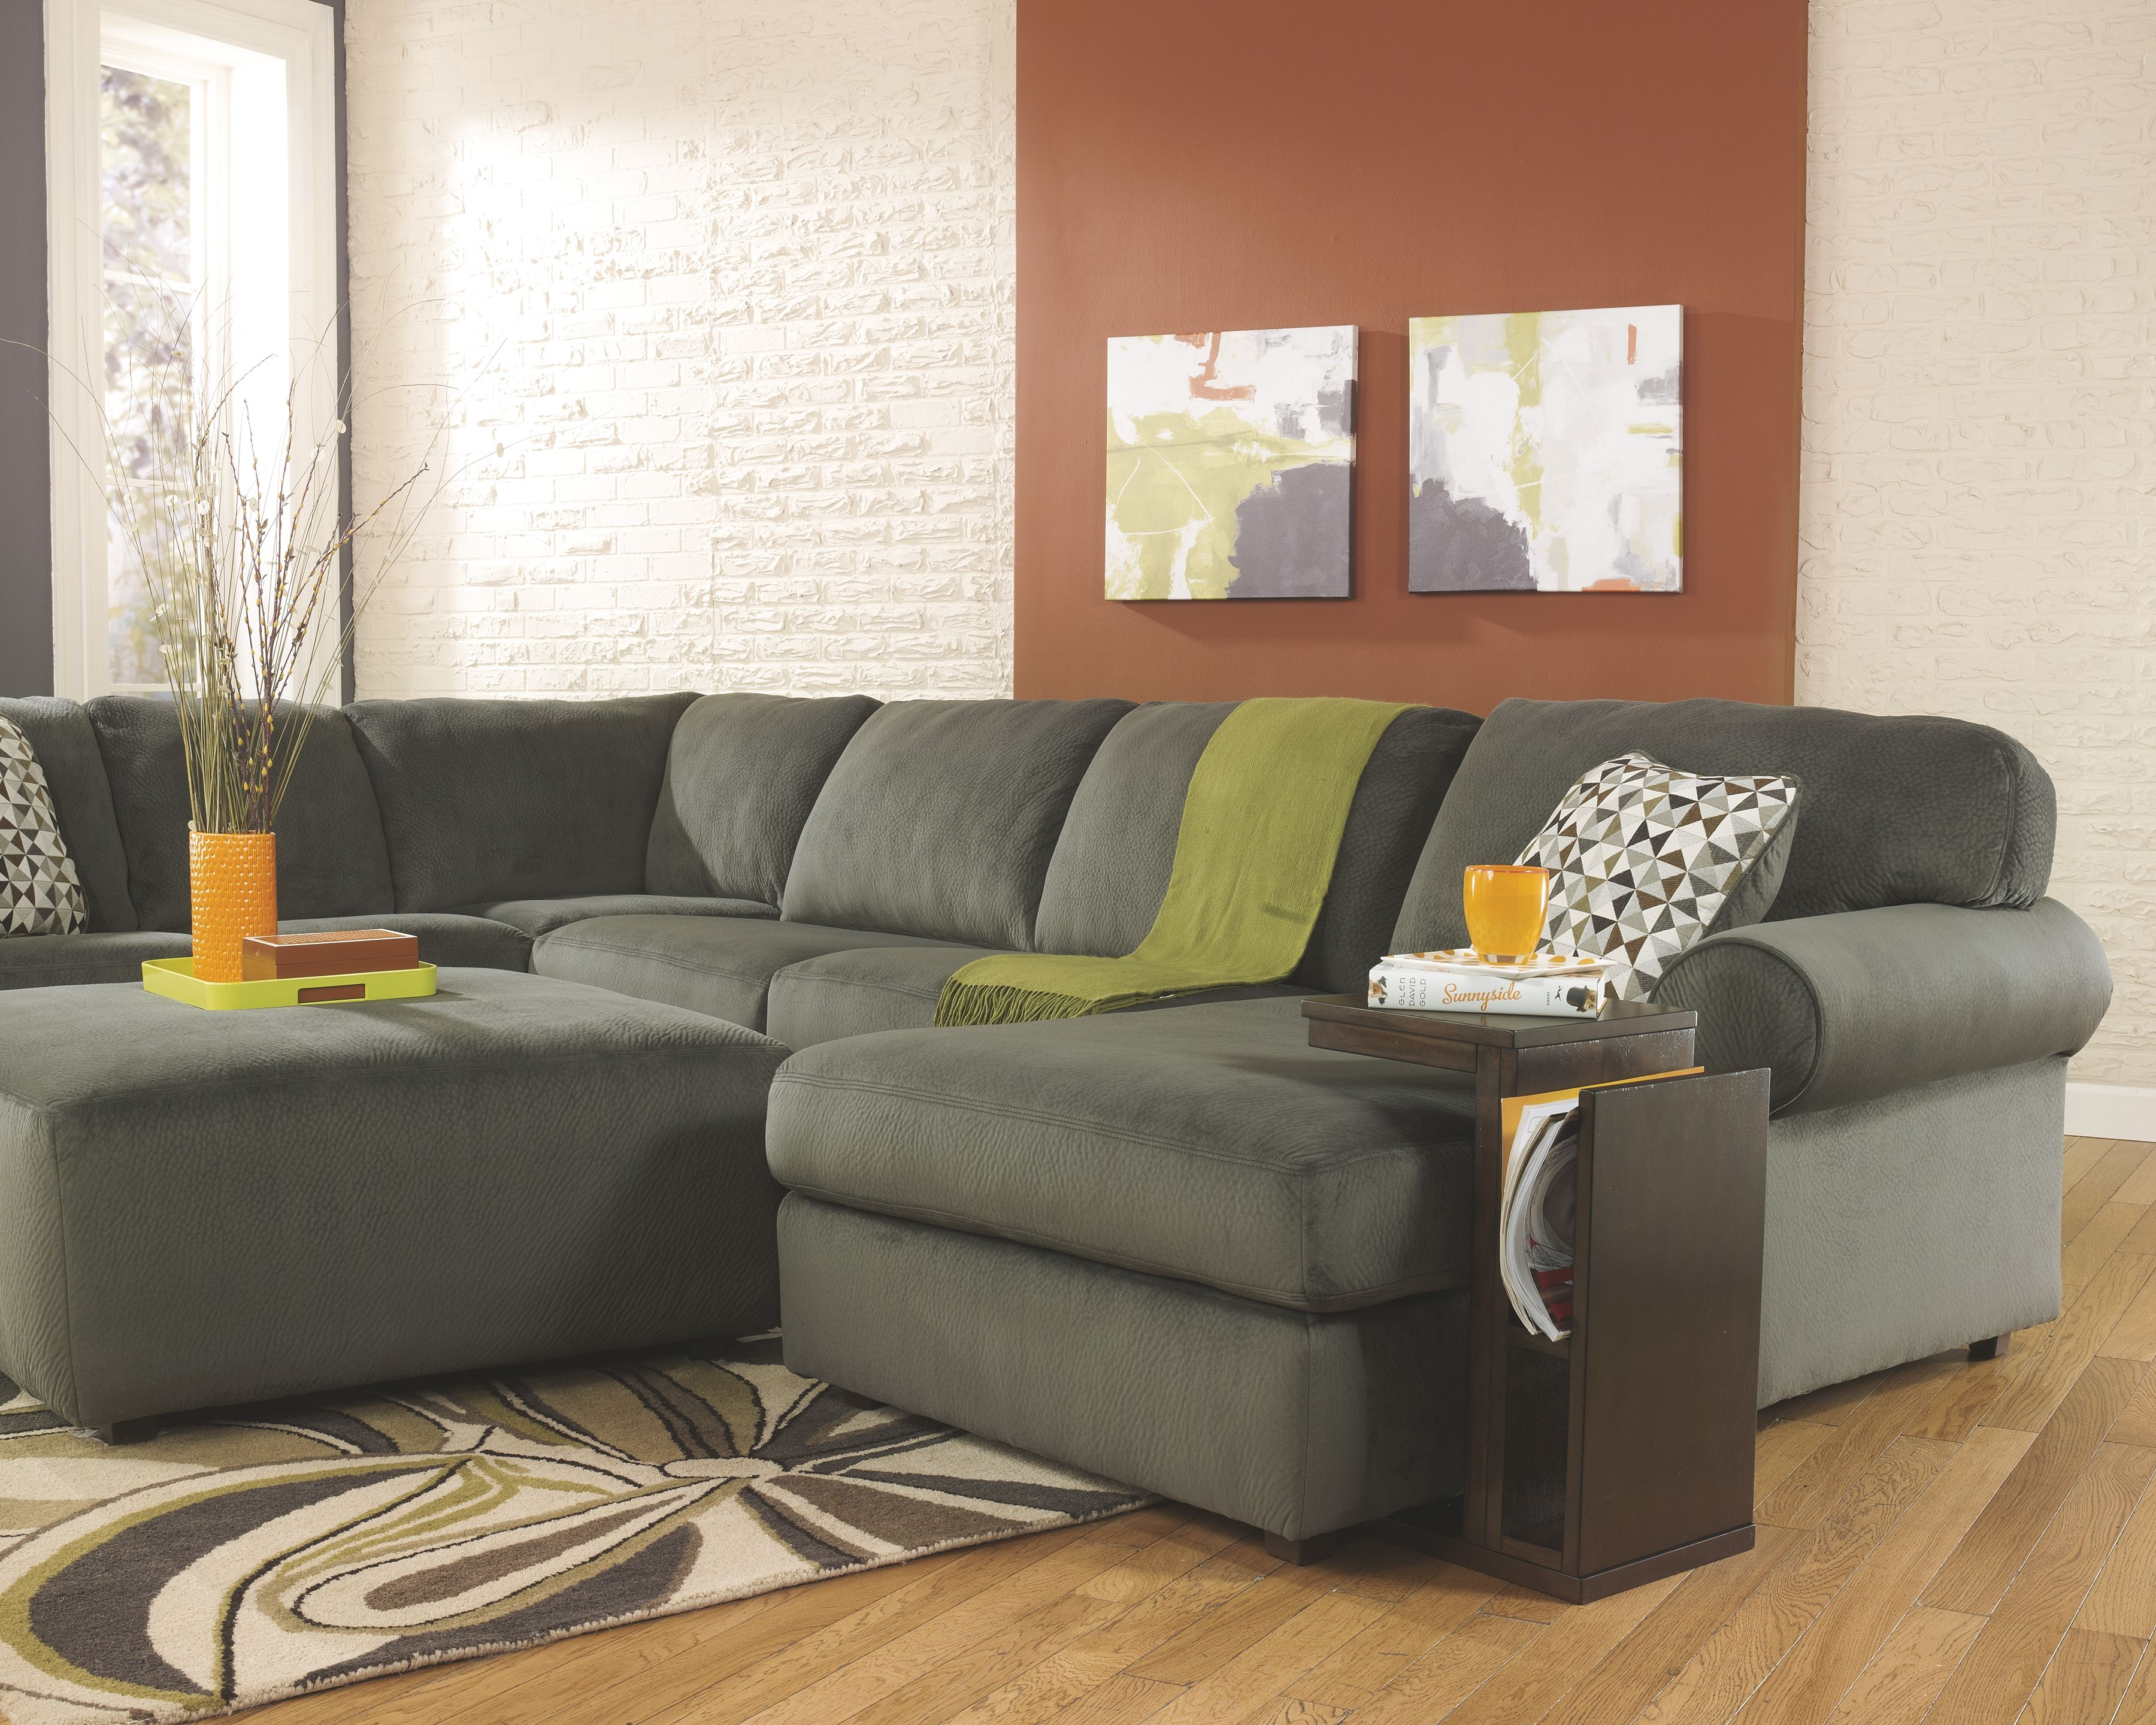 Enjoyable Jessa Place 3 Piece Sectional Pewter Products 3 Piece Gmtry Best Dining Table And Chair Ideas Images Gmtryco